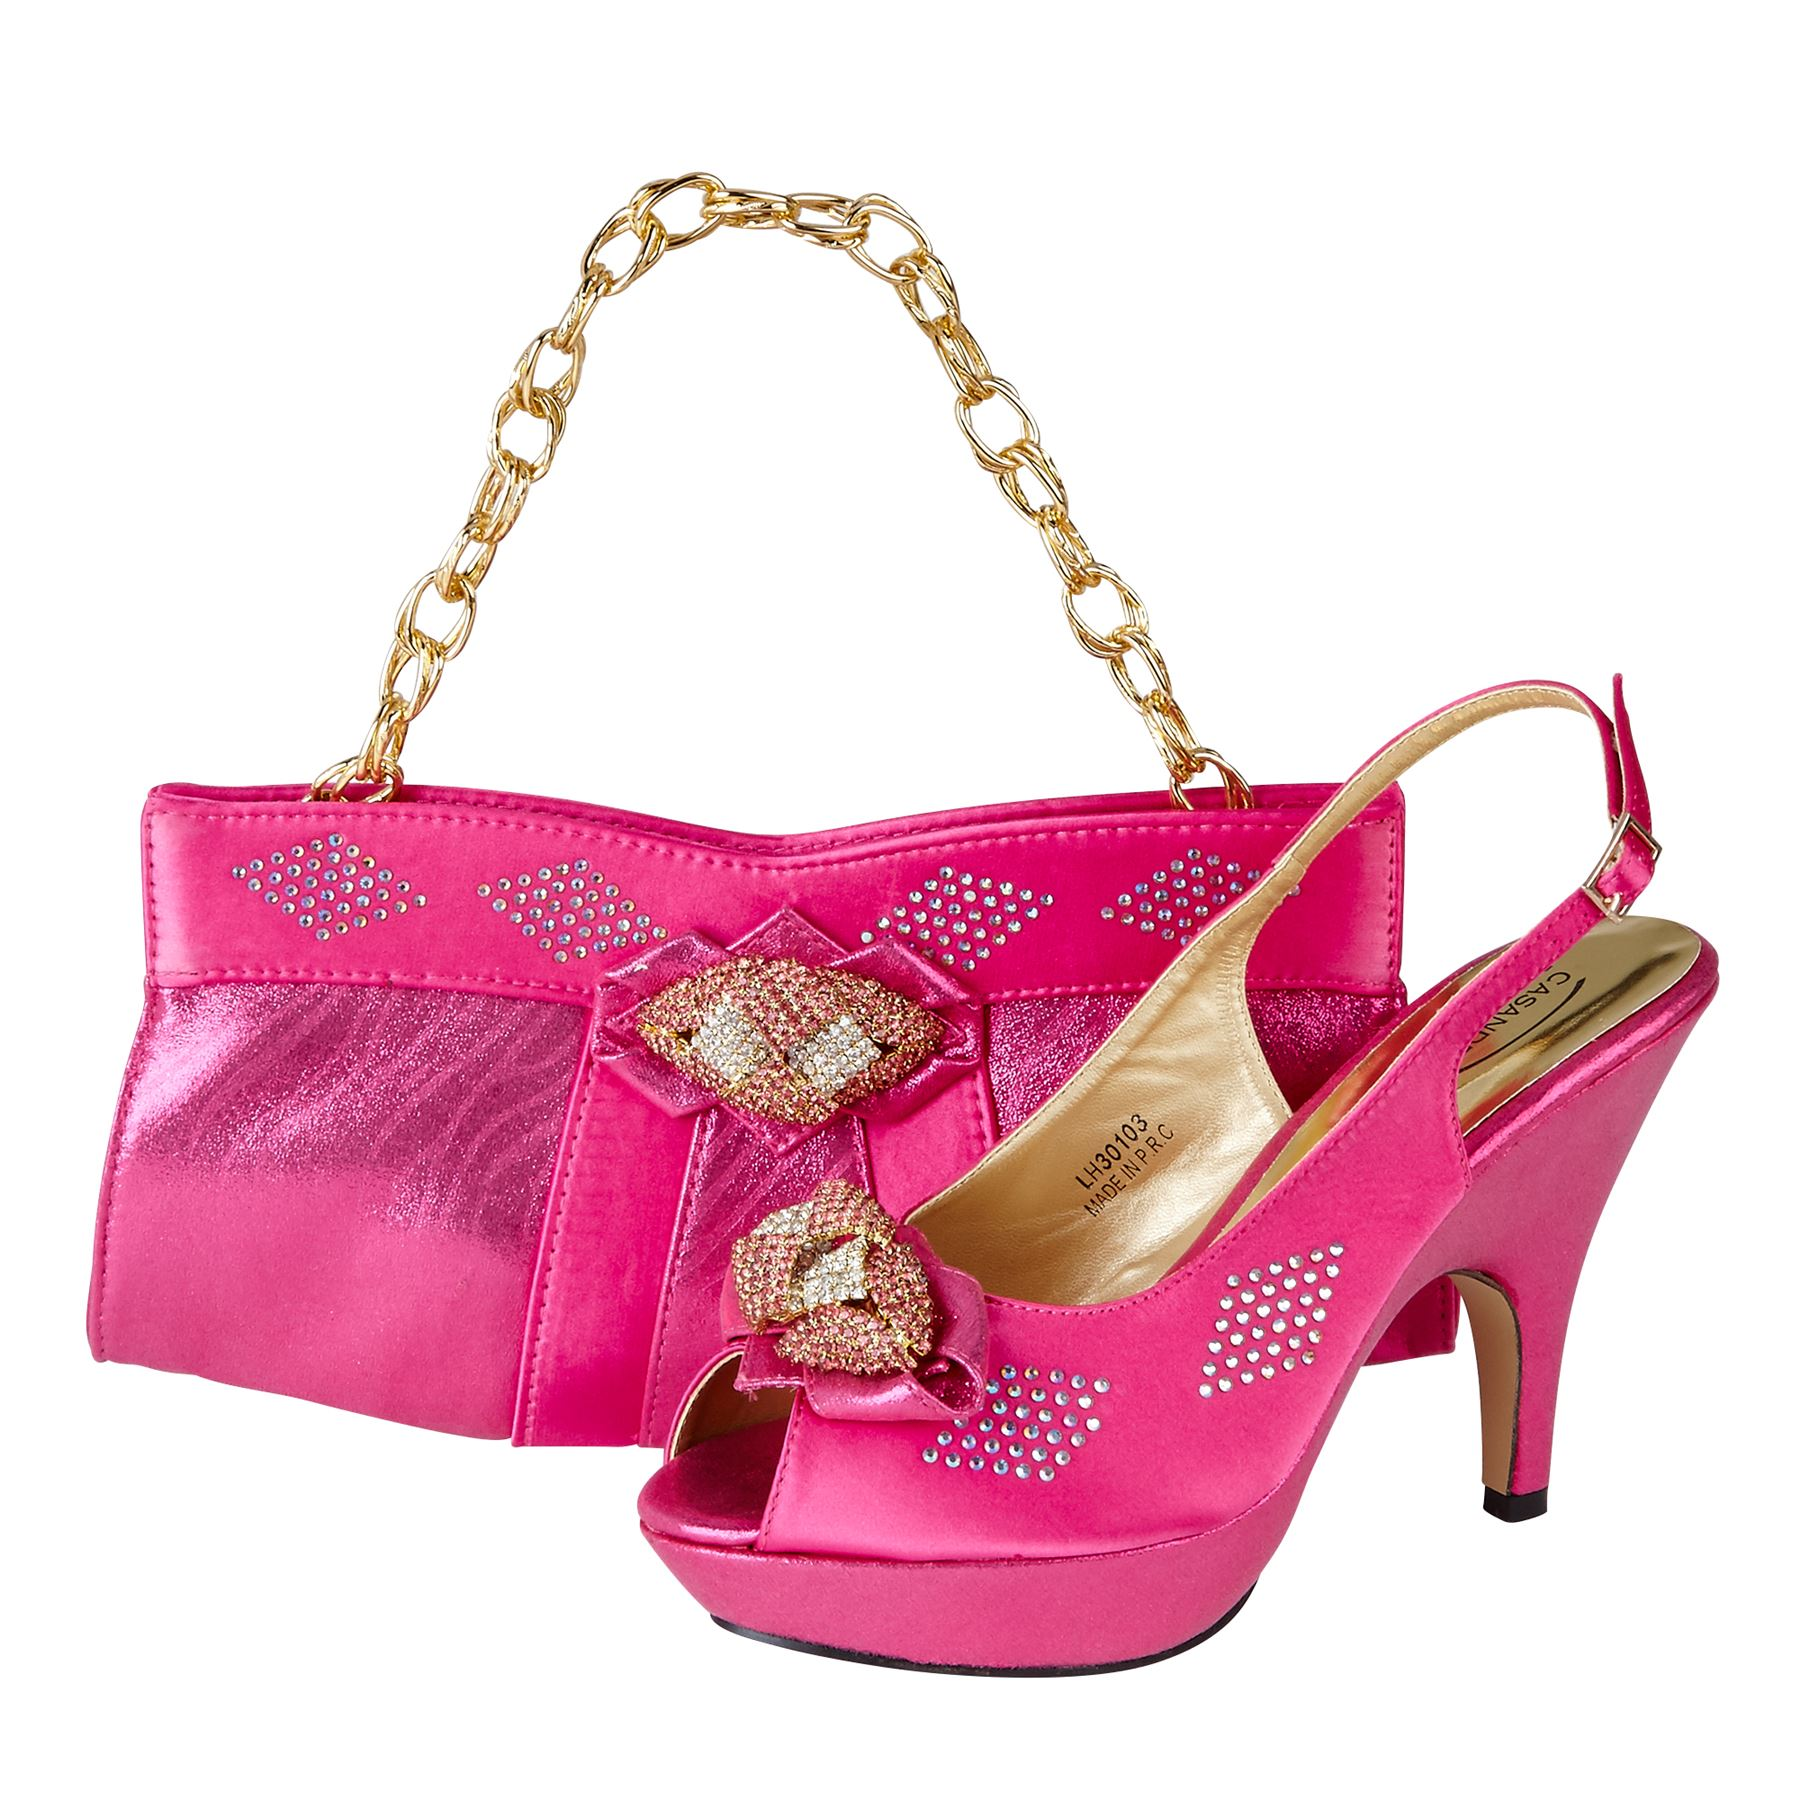 Popular Is It True That Your Bag Must Match Your Shoes? With So Many New Choices Of Bags In Delicious Colors And Prints, Who Has The Money, Much Less The Time, To Have Matching Shoes To Go With Them? Shoes And Bags Are Accent Pieces